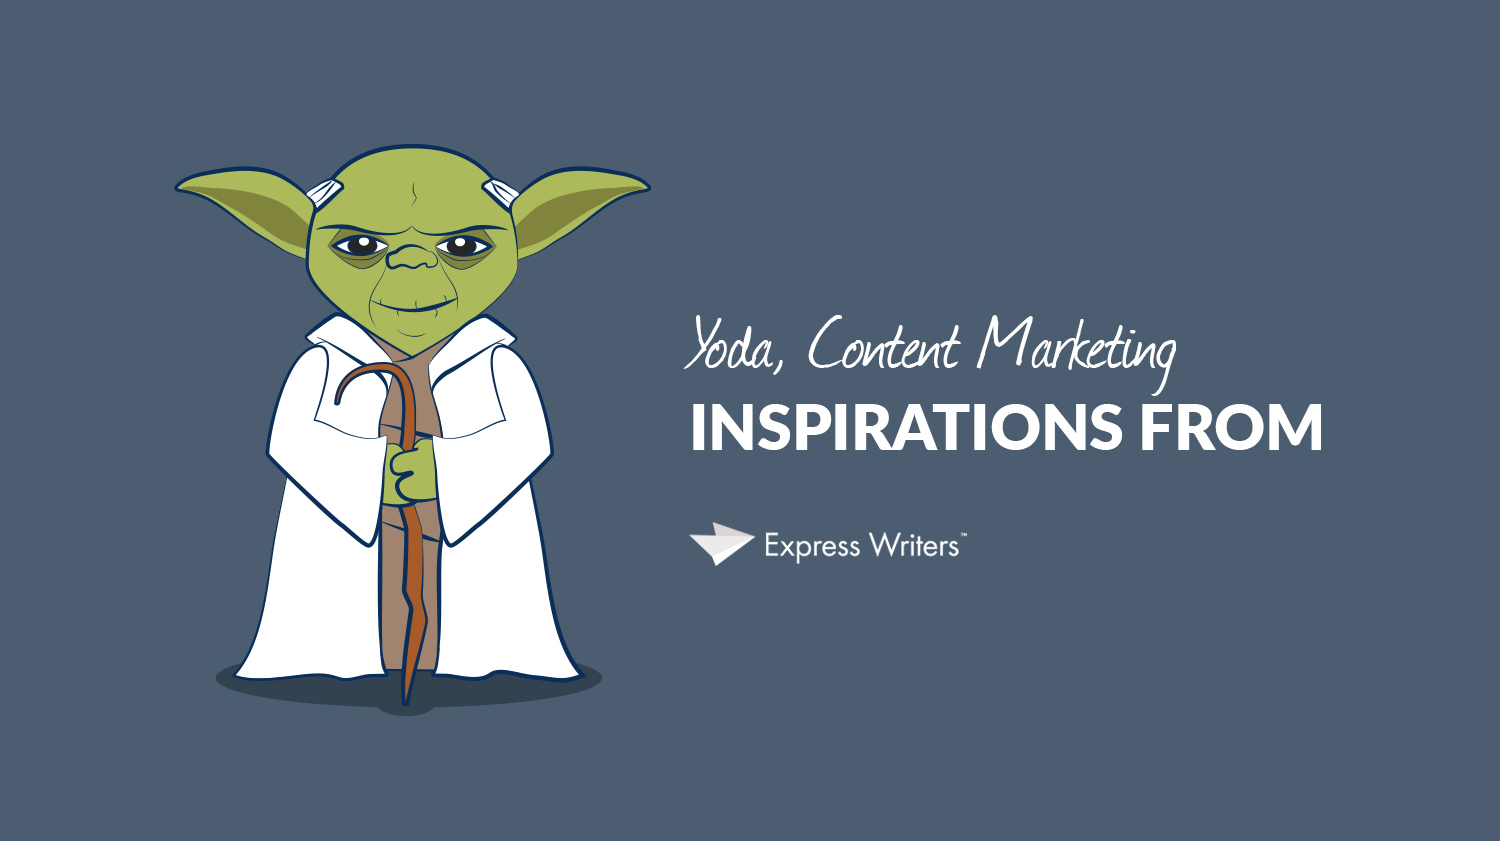 yoda content marketing inspirations